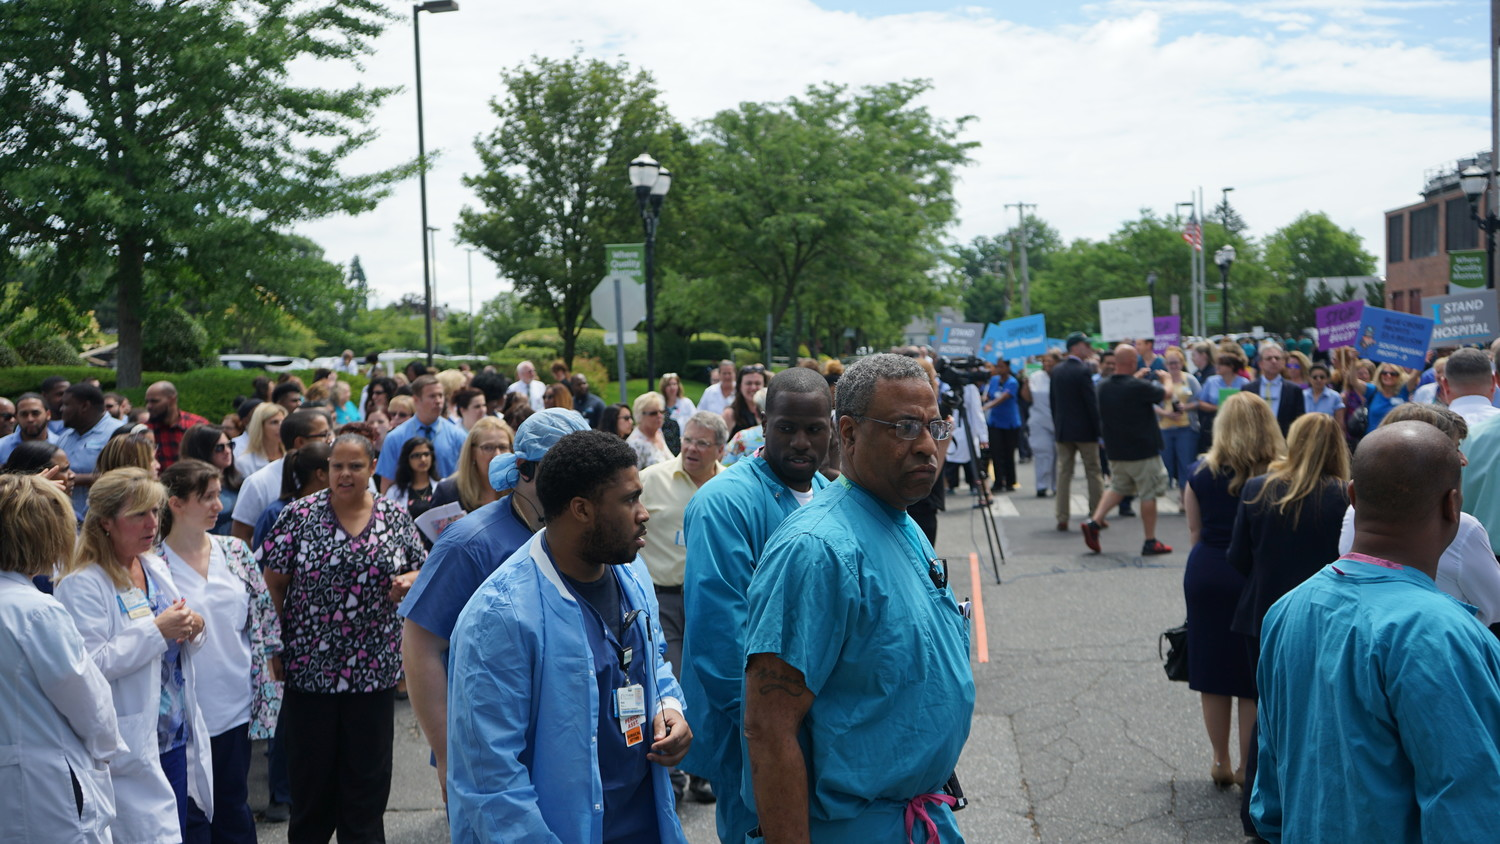 Hundreds of medical center staff rallied on June 21 calling on Empire Blue Cross Blue Shield to relent in failed contract negotiations between the insurance agency and South Nassau Communities Hospital.